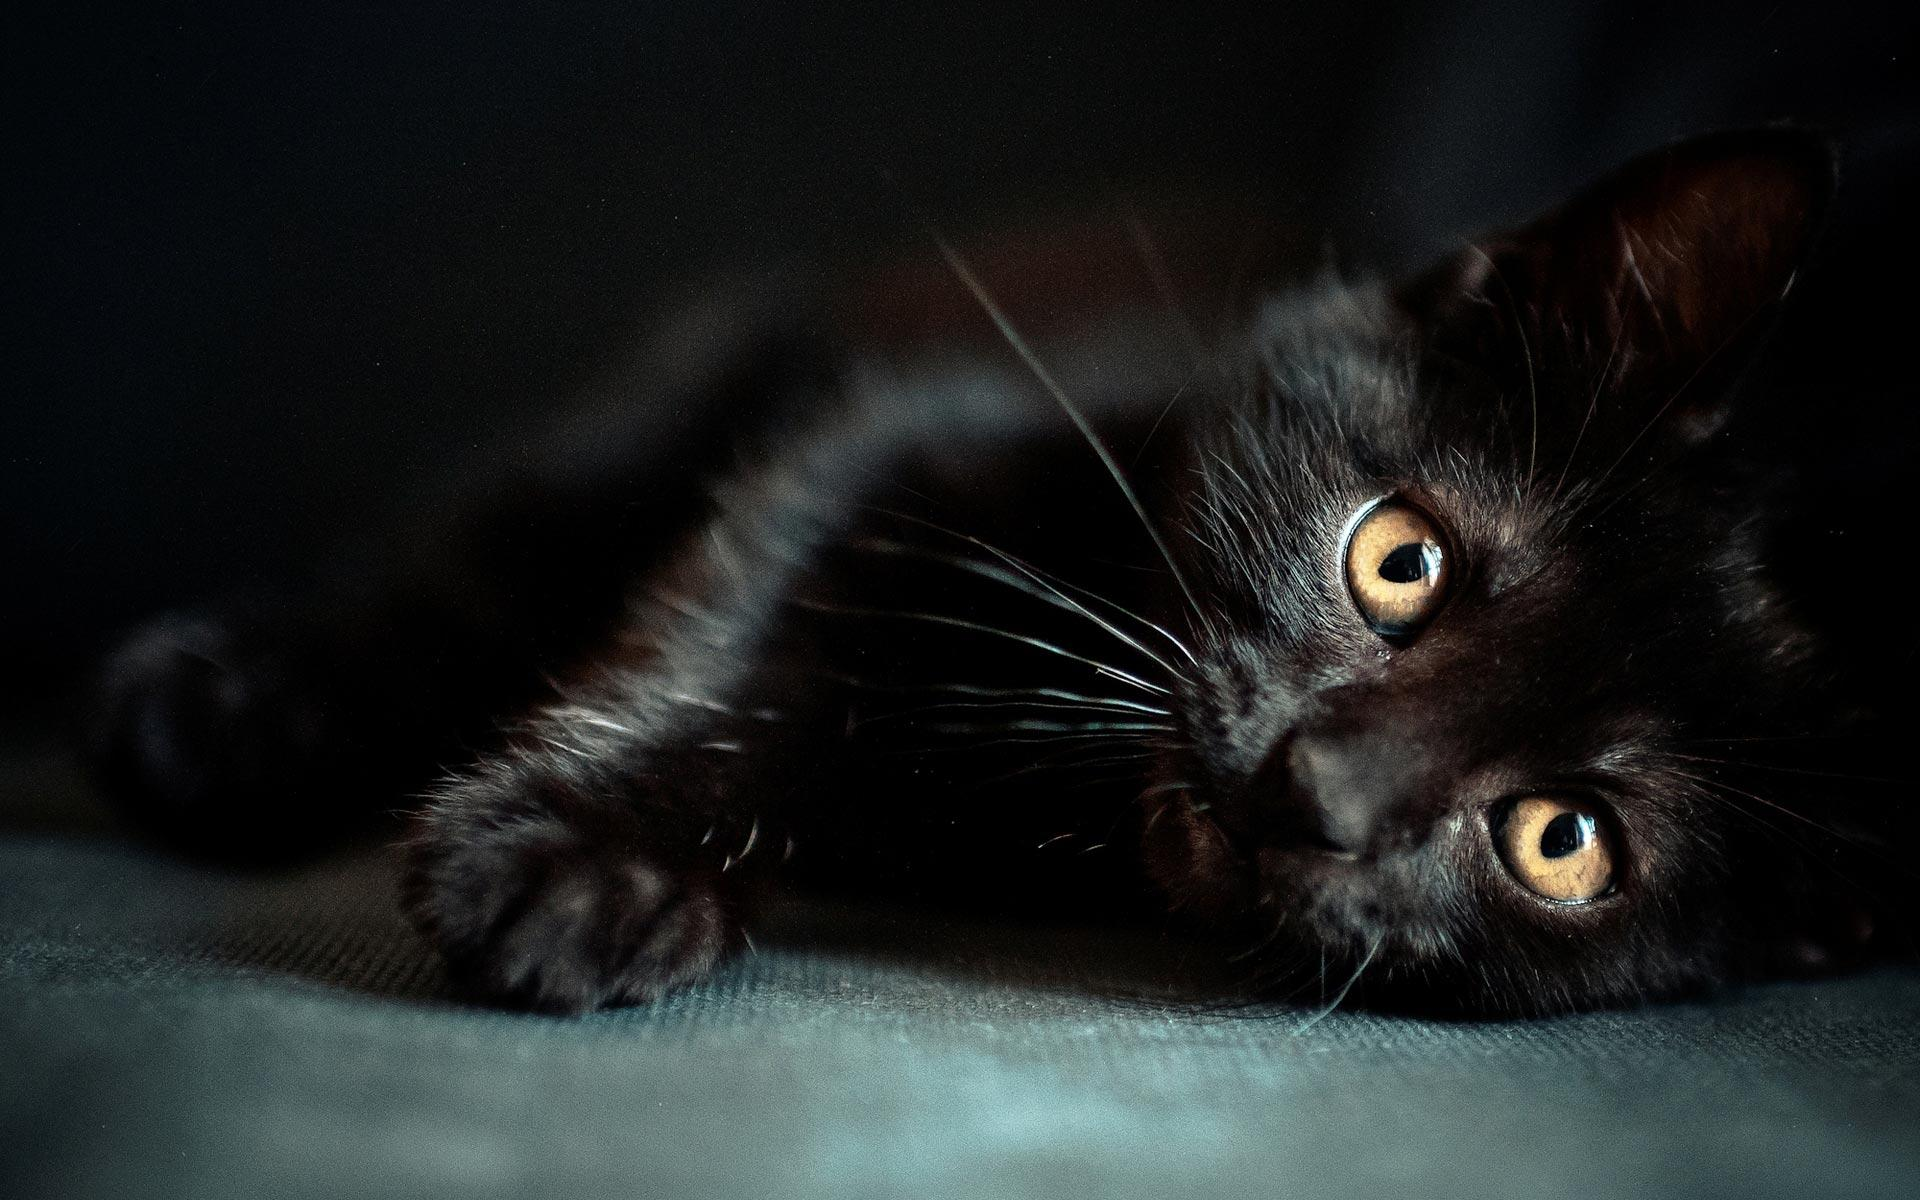 Wallpapers Black Cat   Wallpaper Cave Black Cat Sleep HD Desktop Wallpaper   wallpaper source